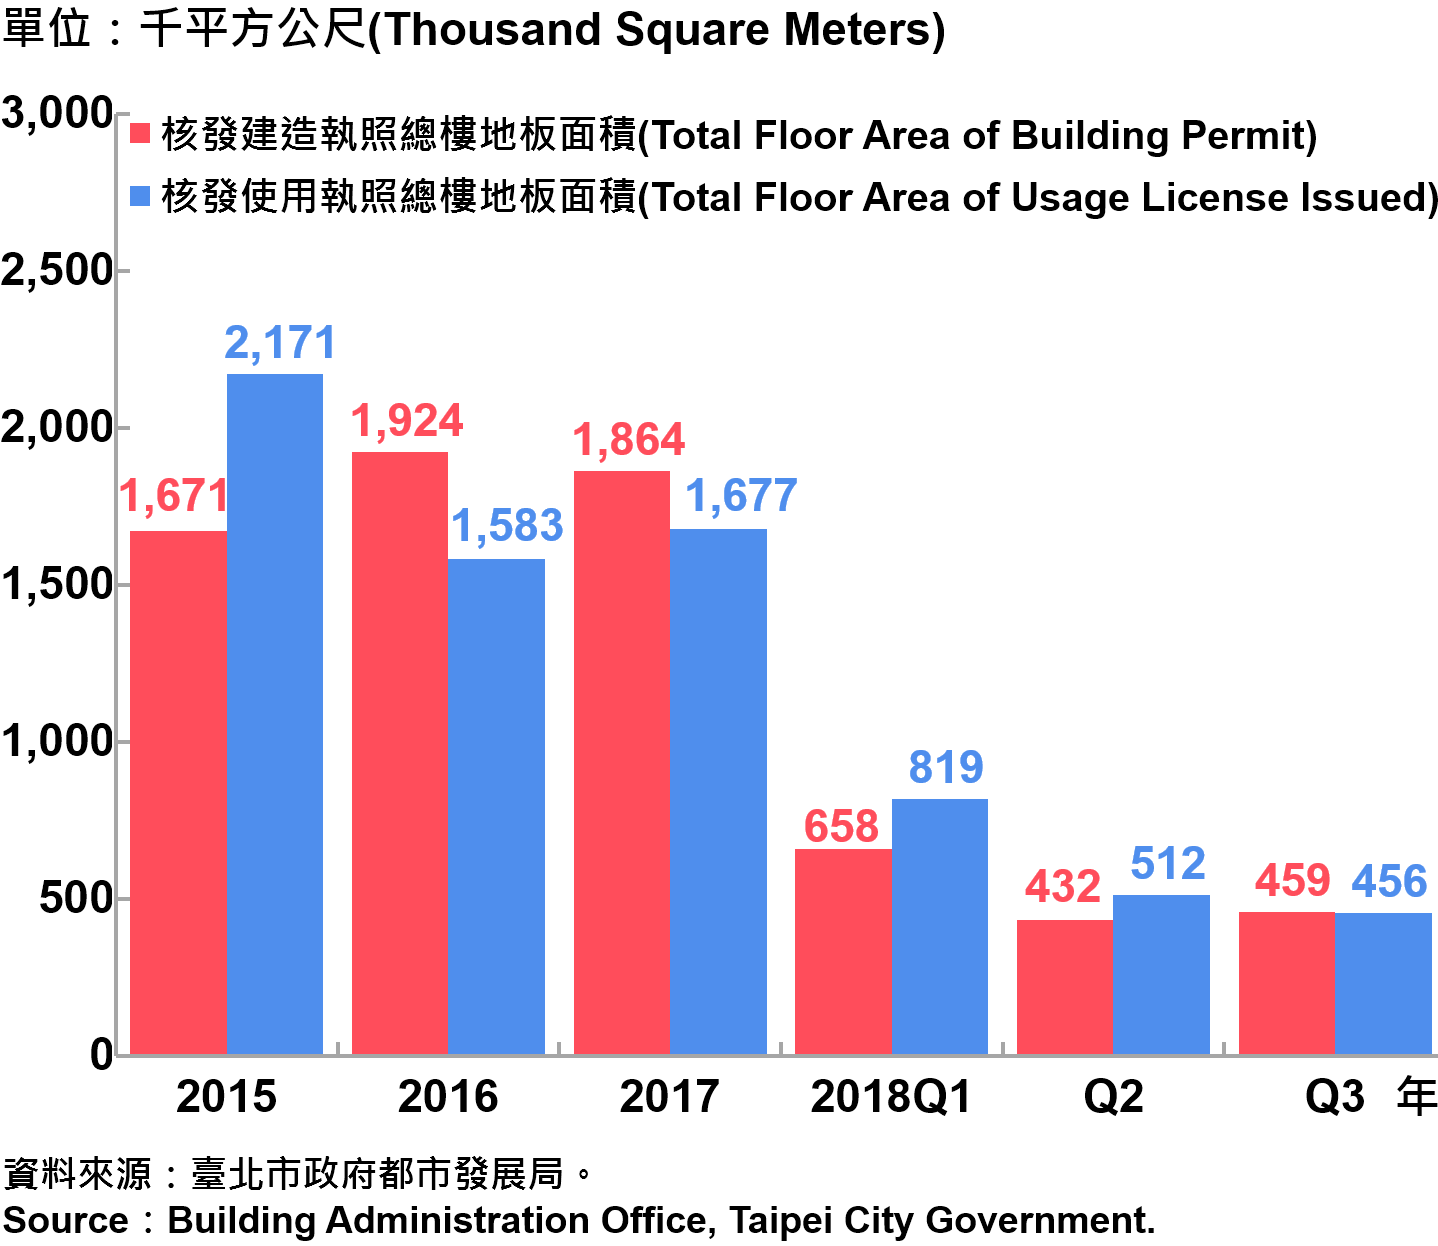 臺北市核發建築物執照與使用執照總樓地板面積—2018Q3 Building with Newly Construction and Using Construction Permits Issued in Taipei City—2018Q3